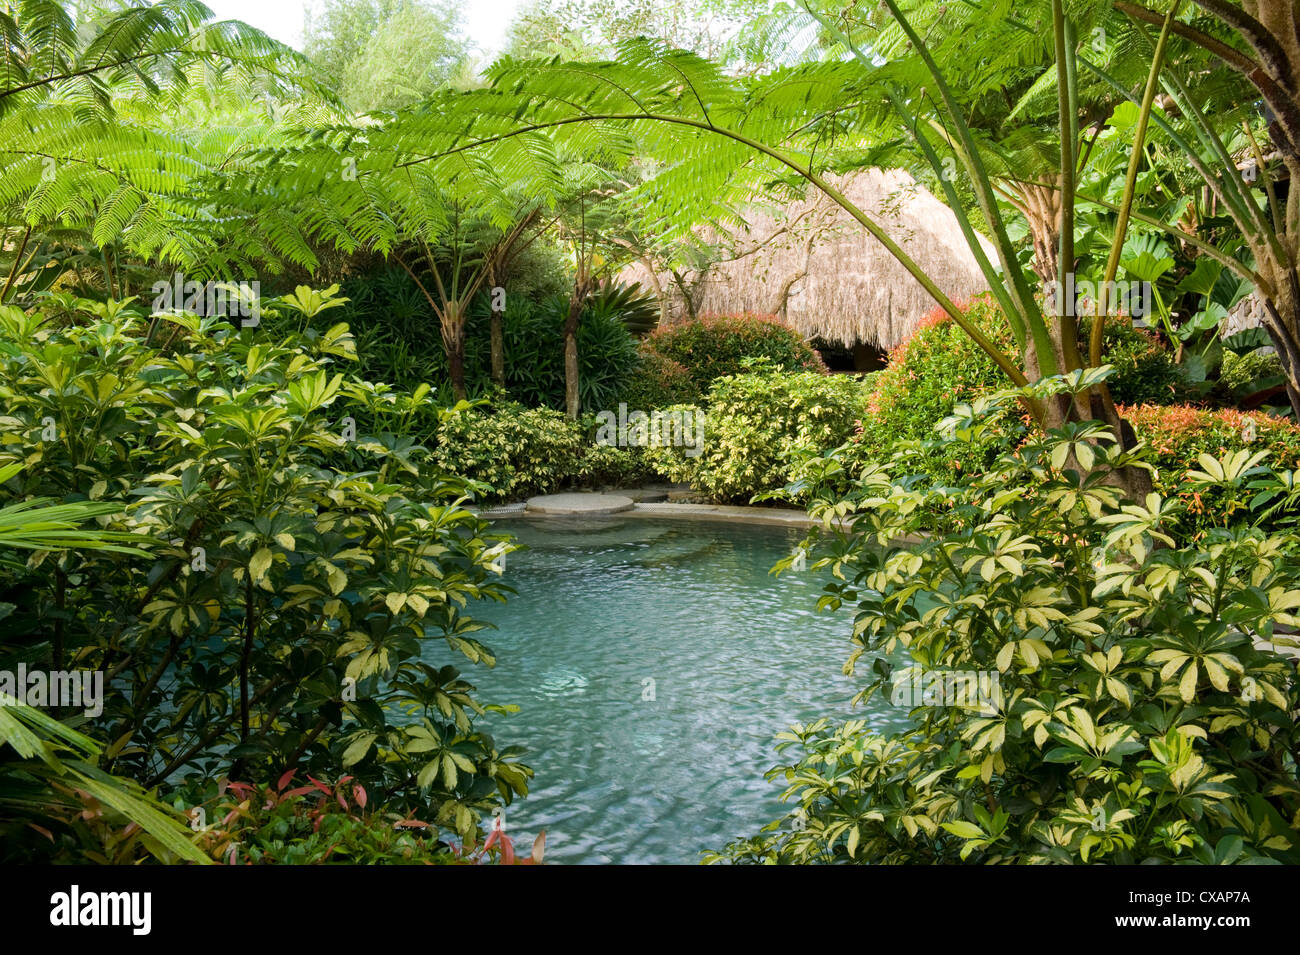 Pool in a tropical garden, Laguna, Philippines, Southeast Asia, Asia - Stock Image